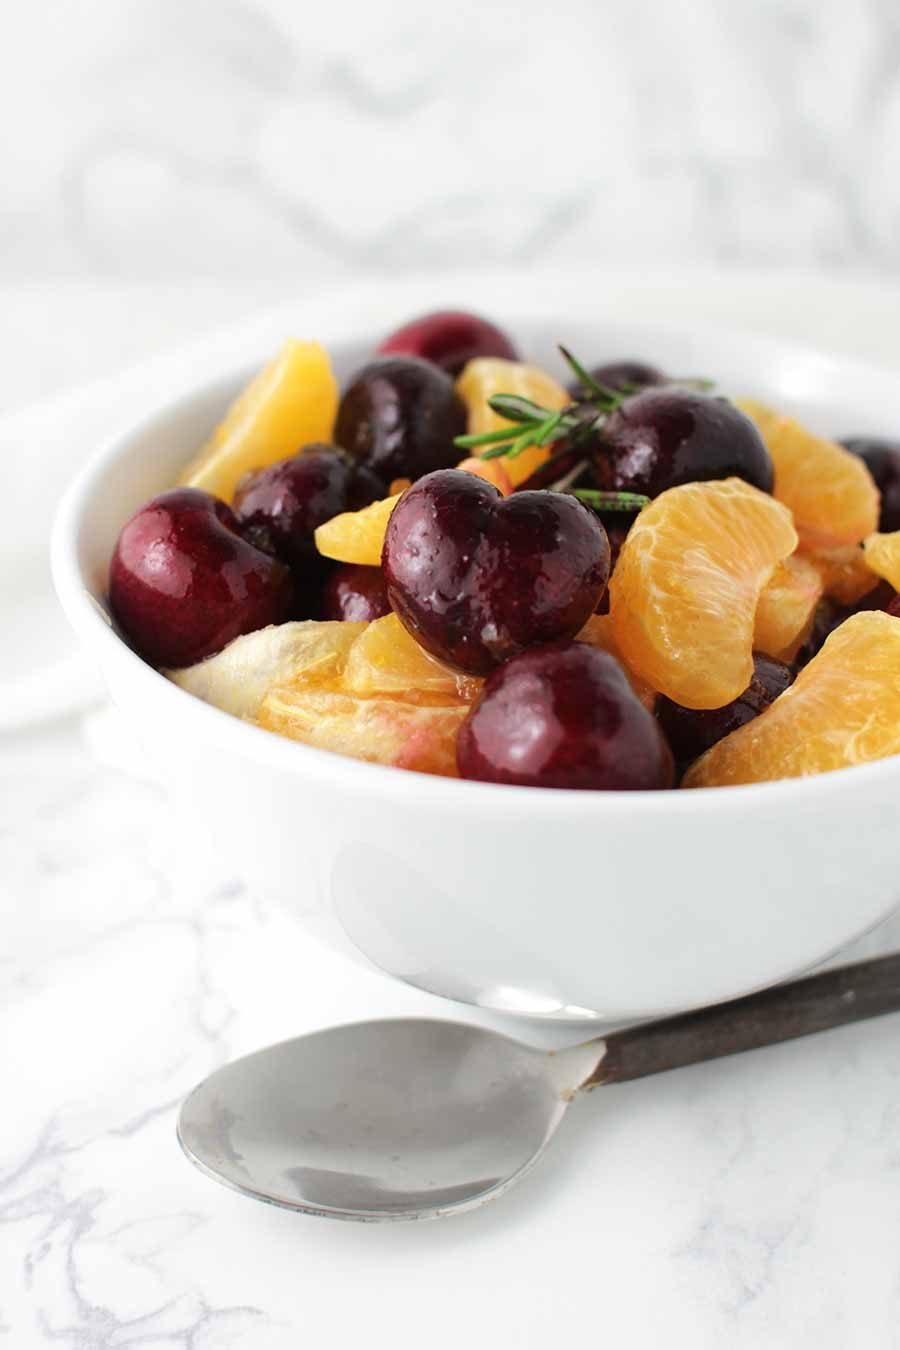 Clementine Fruit Salad with Cherries from acleanplate.com #aip #autoimmuneprotocol #paleo #dessert #salad